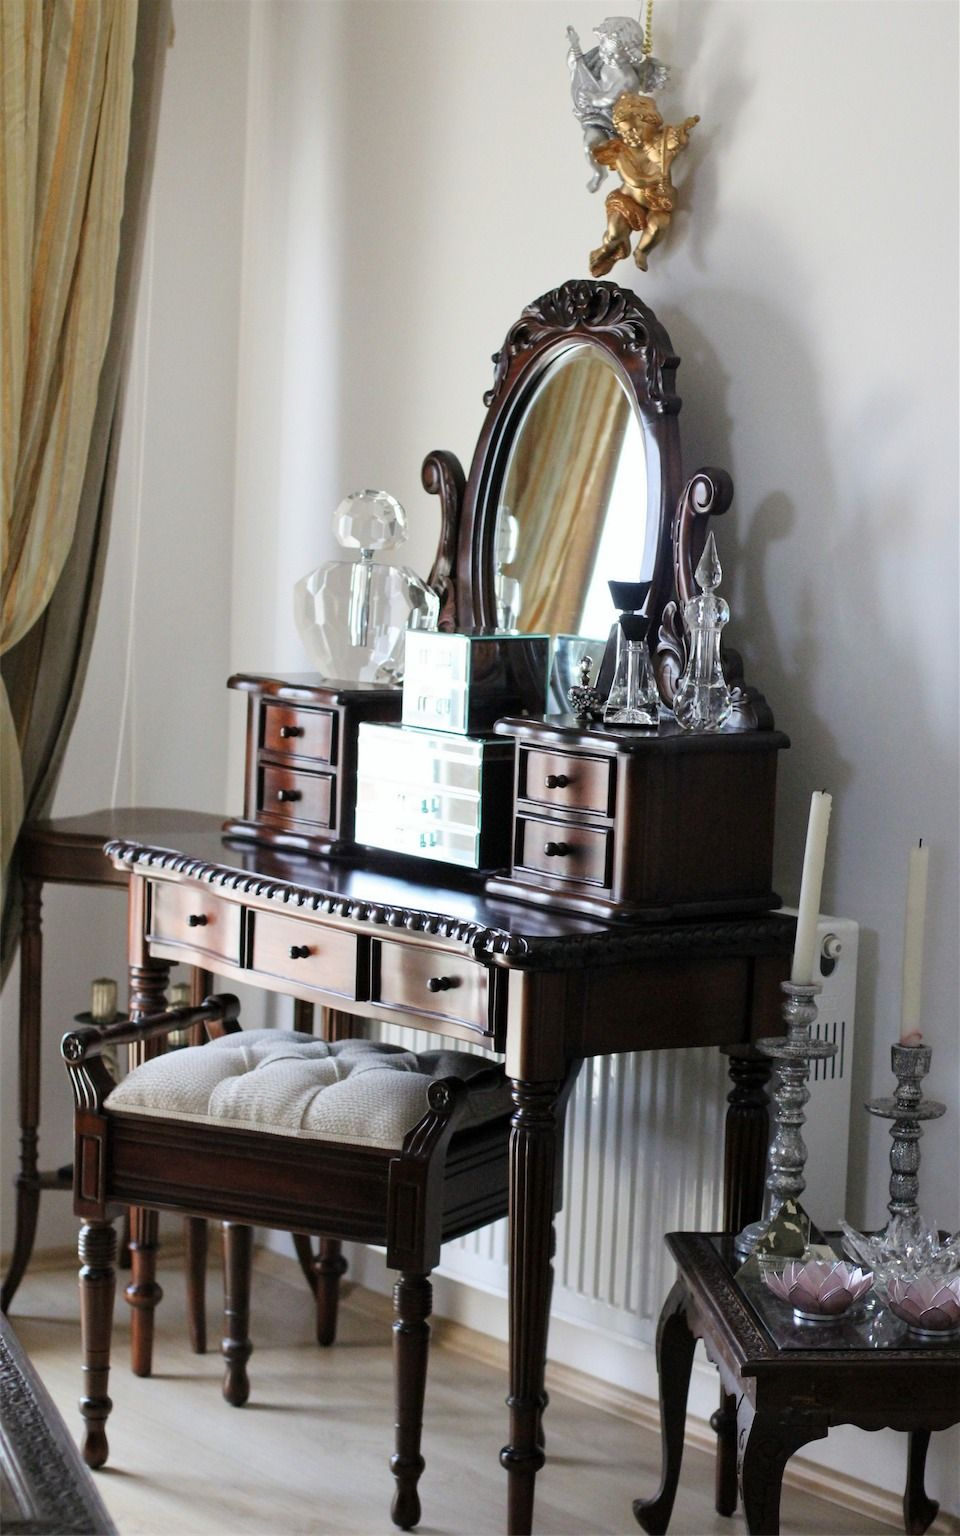 Vanity interioroutdoor design ve d mekan tasarm vanity but could be a gorgeous writing desk for library geotapseo Choice Image